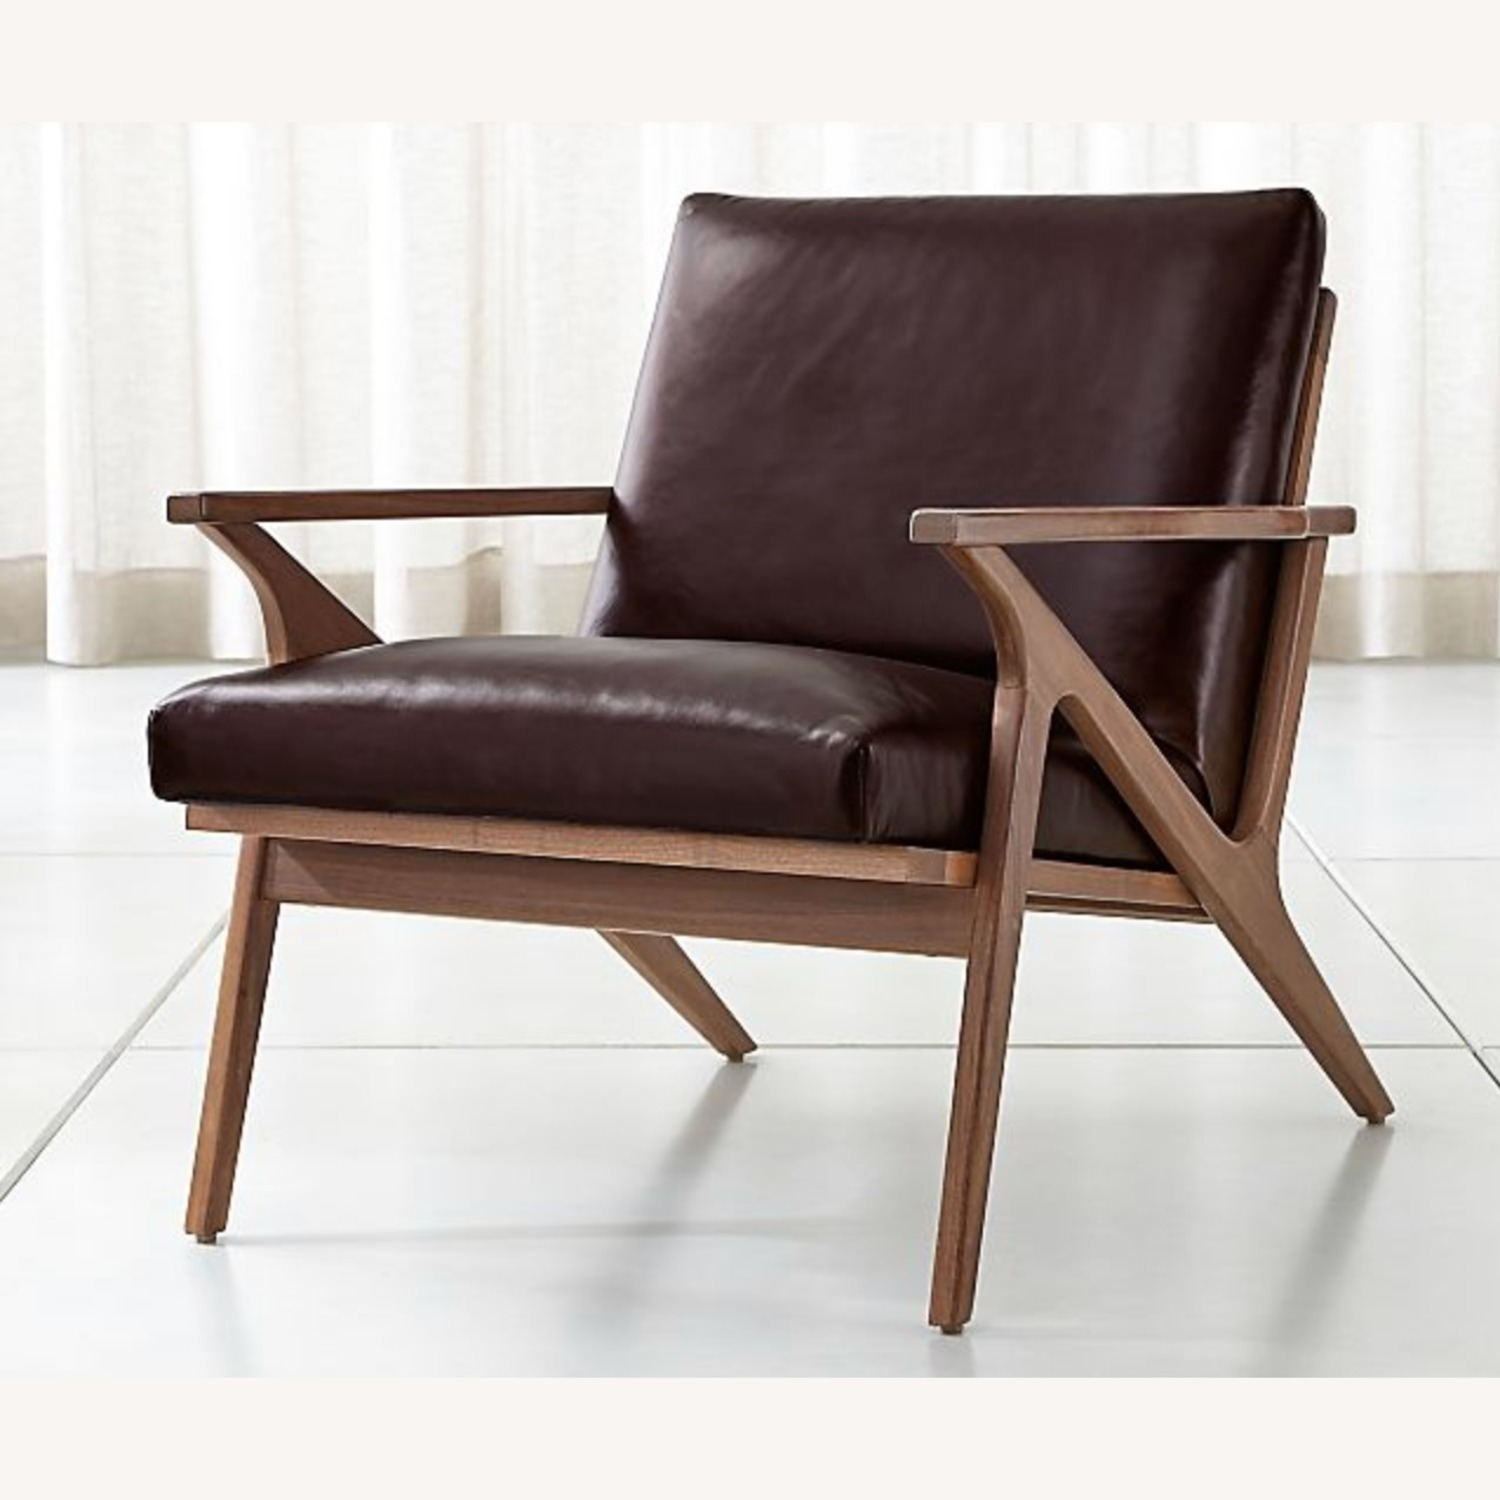 Crate & Barrel Cavett Chair and Ottoman - image-3